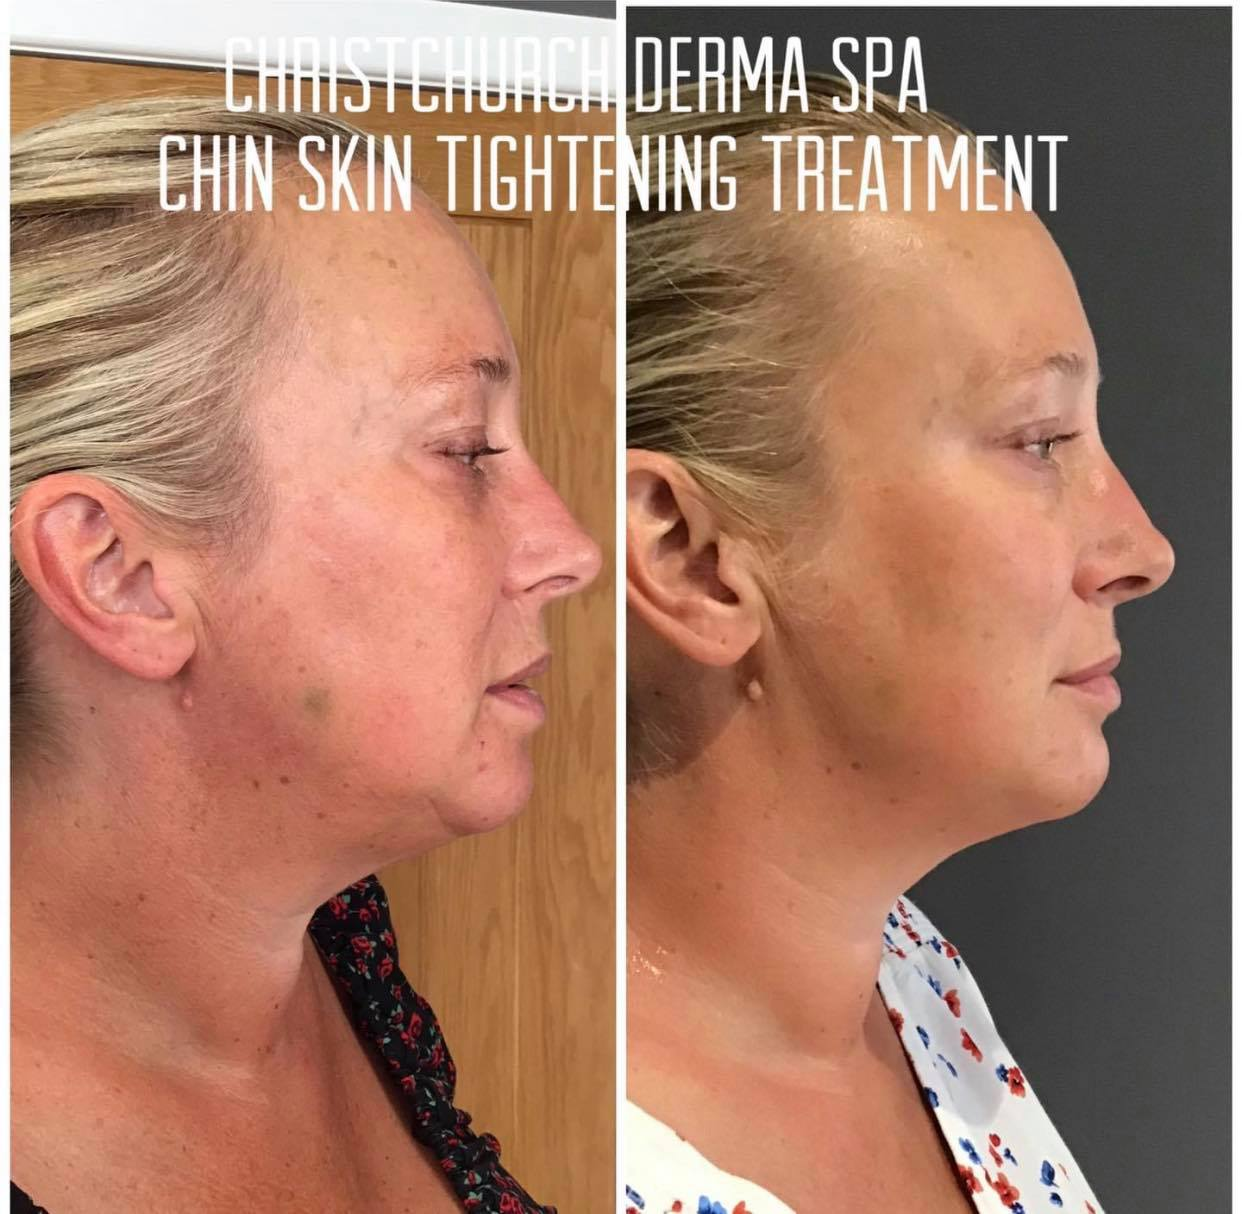 RF Skin tightening chin before and after photos